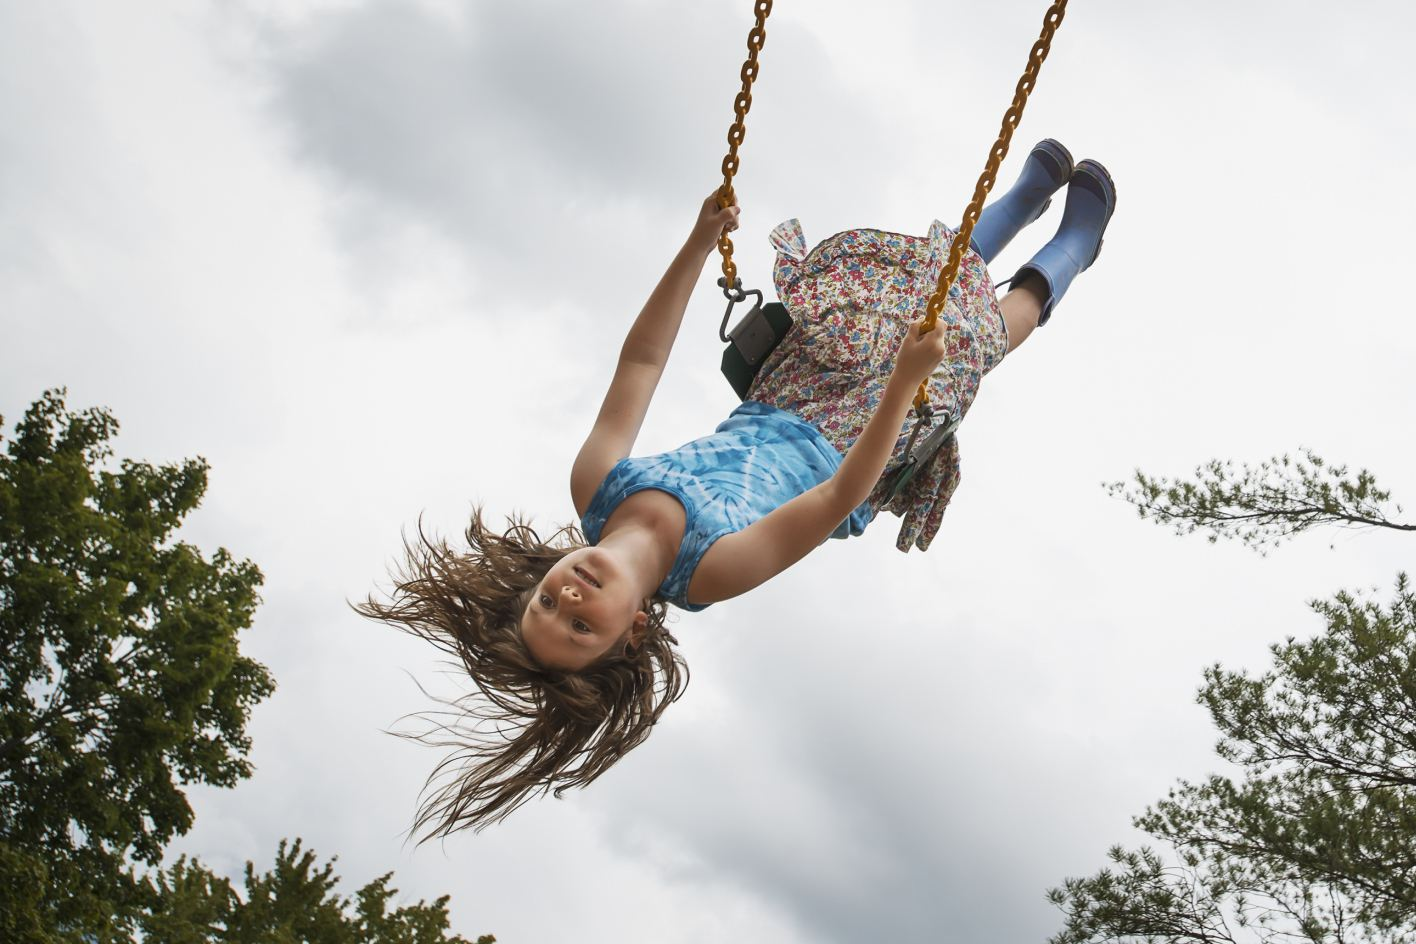 poem about swinging to share with grandchildren